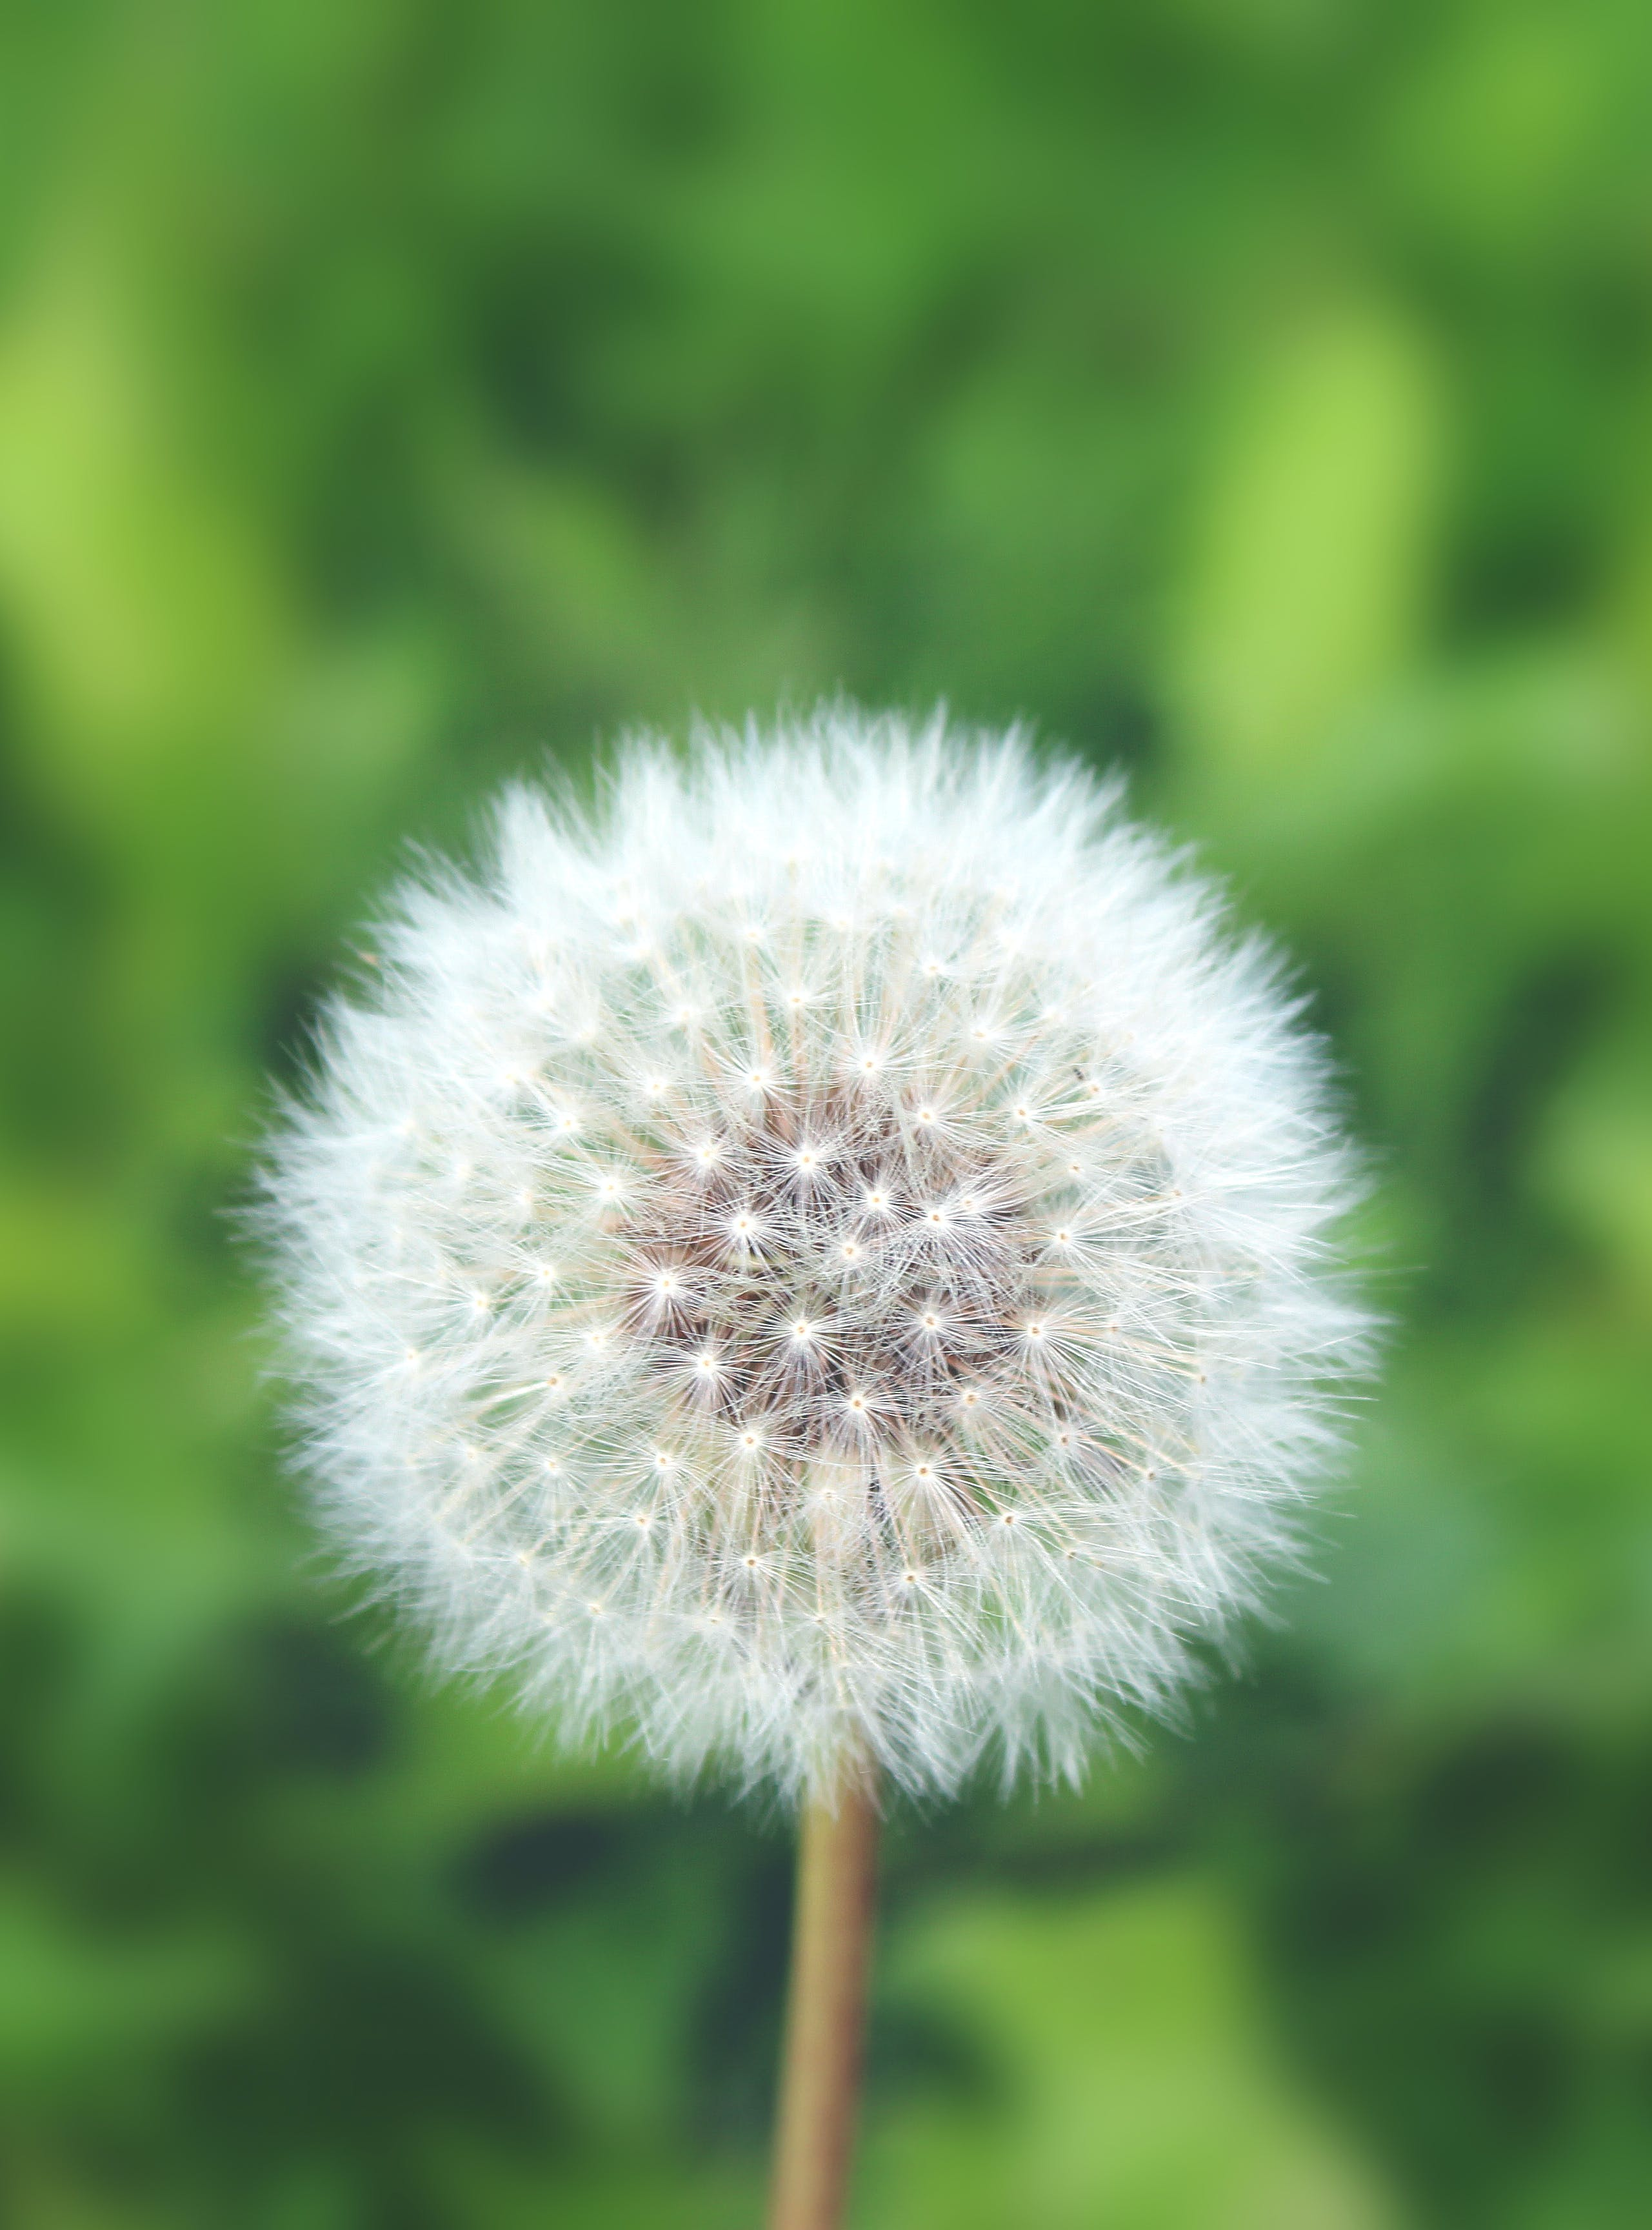 Free stock photo of air flower, bliss, dandelion, dandelions